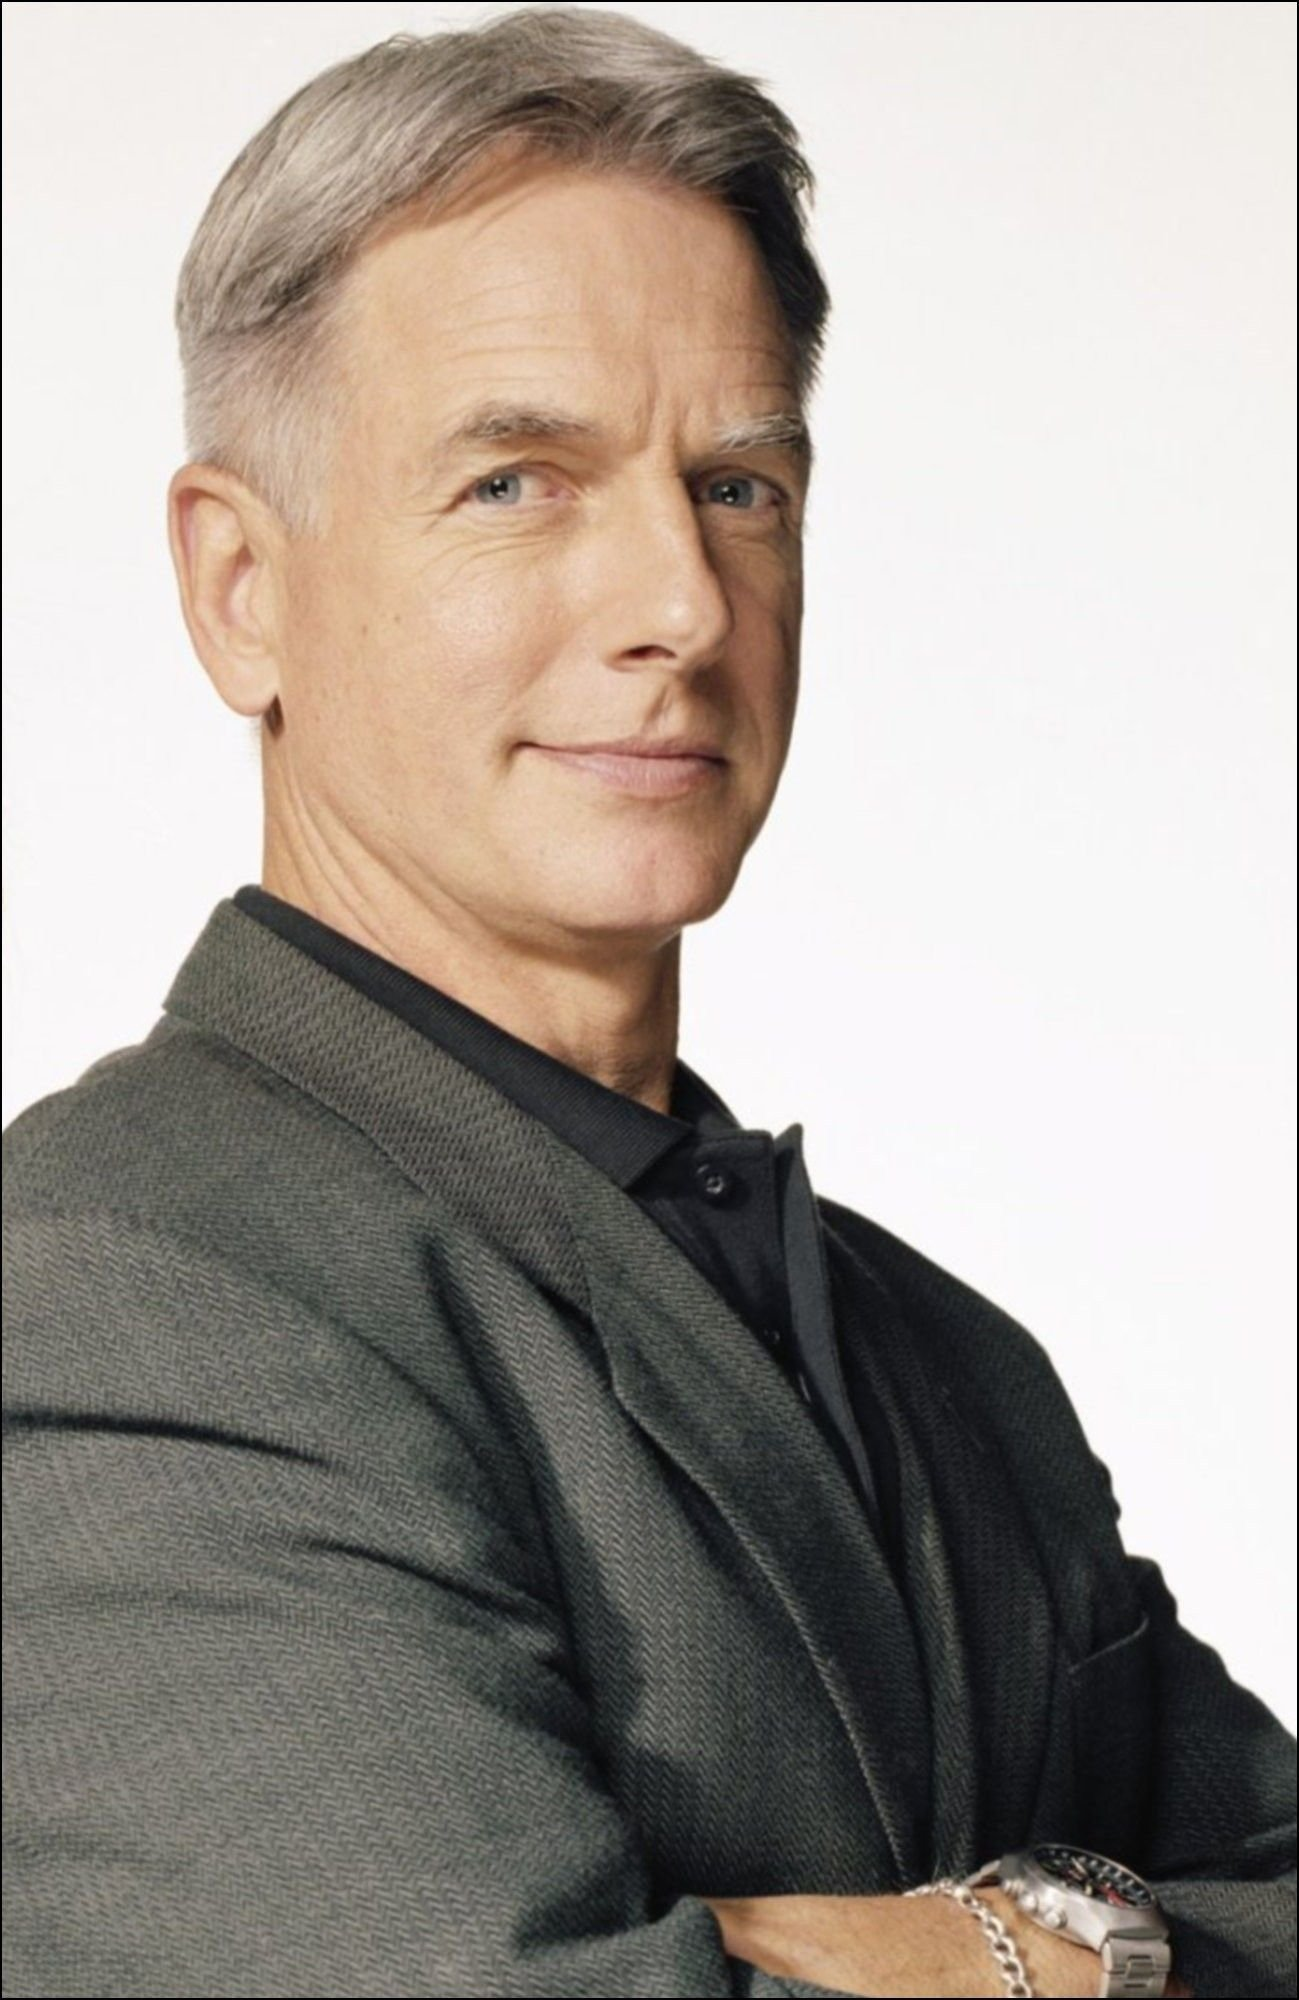 The Best Ncis Gibbs Haircut Hair And Make Up Mark Harmon Hair Pictures